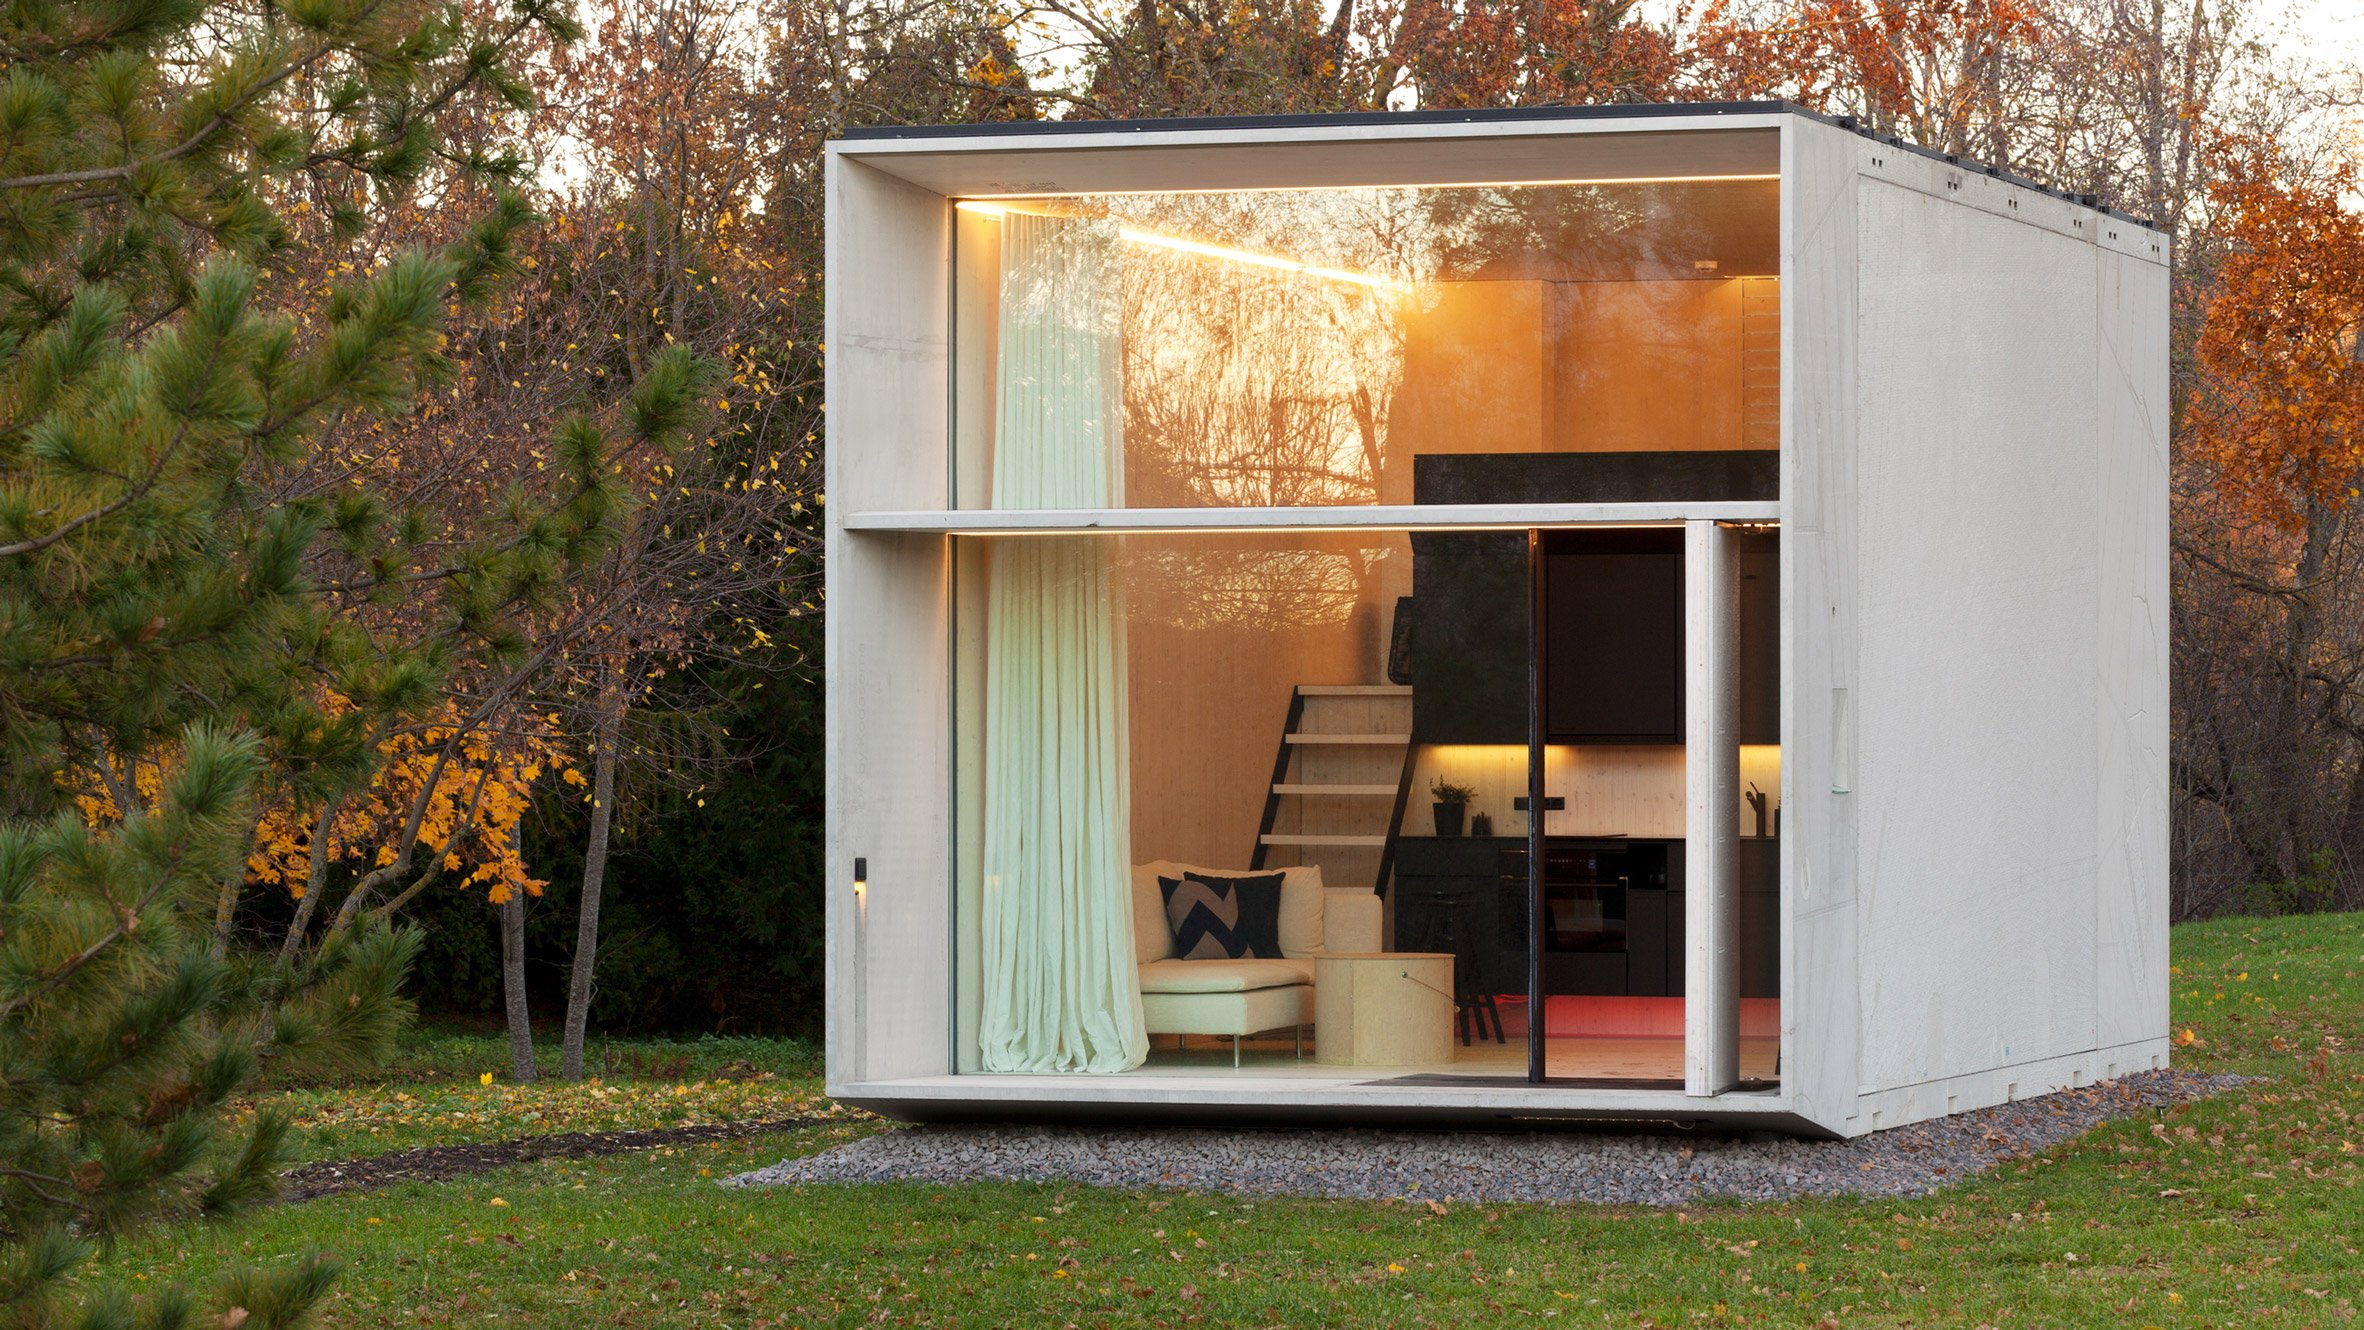 kodasema launches tiny prefab home for 150k in uk - Micro Home